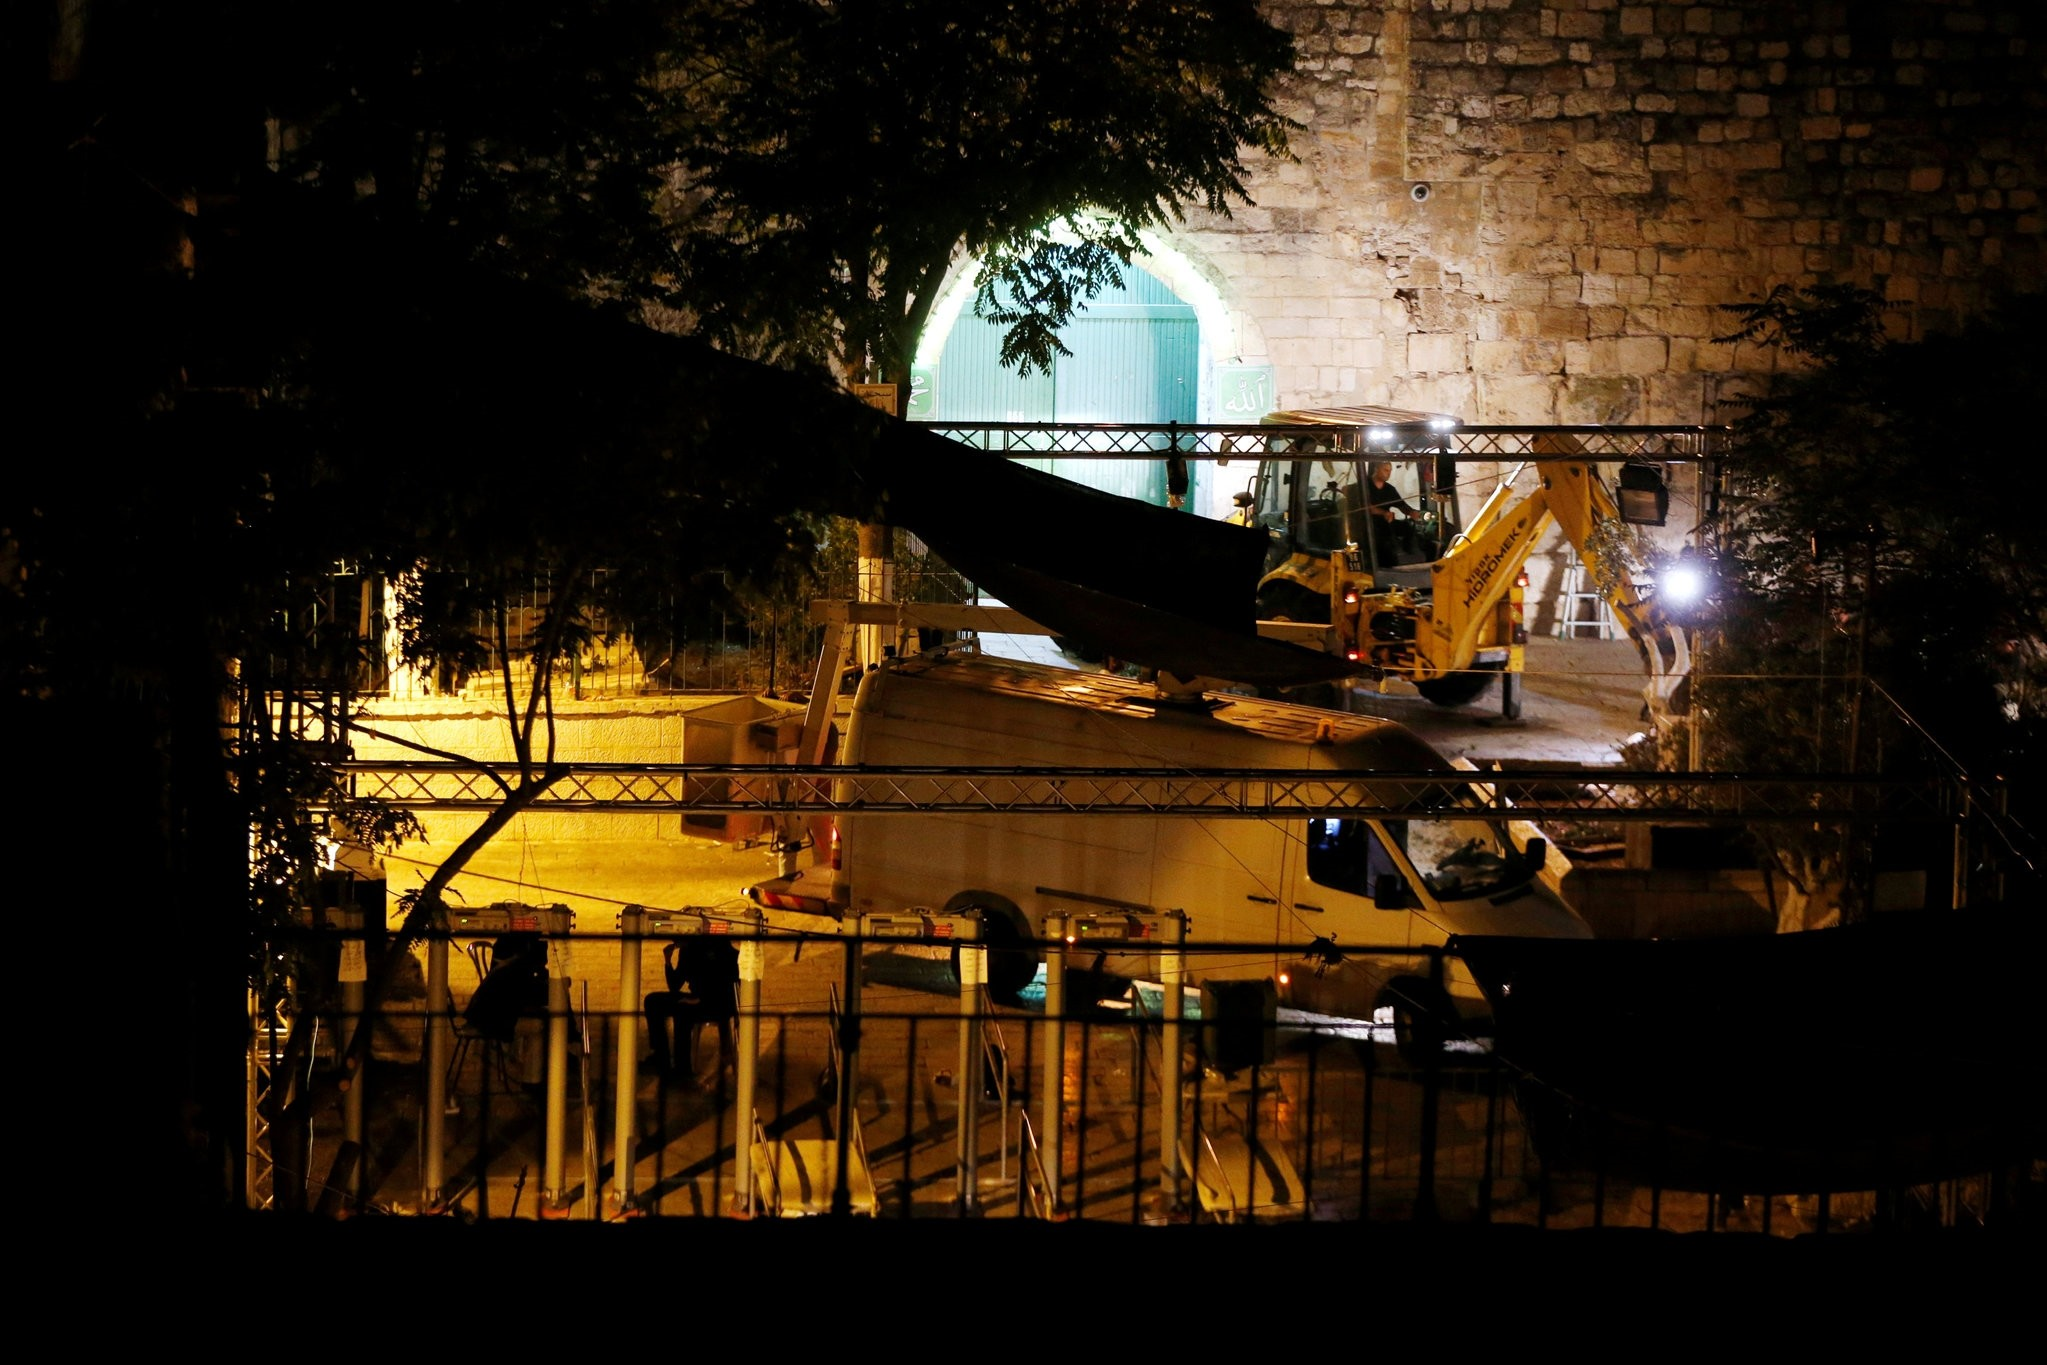 Israeli security forces stand next to heavy machinery as metal detectors that were recently installed are seen at an entrance in Jerusalem's Old City July 25, 2017. (REUTERS Photo)